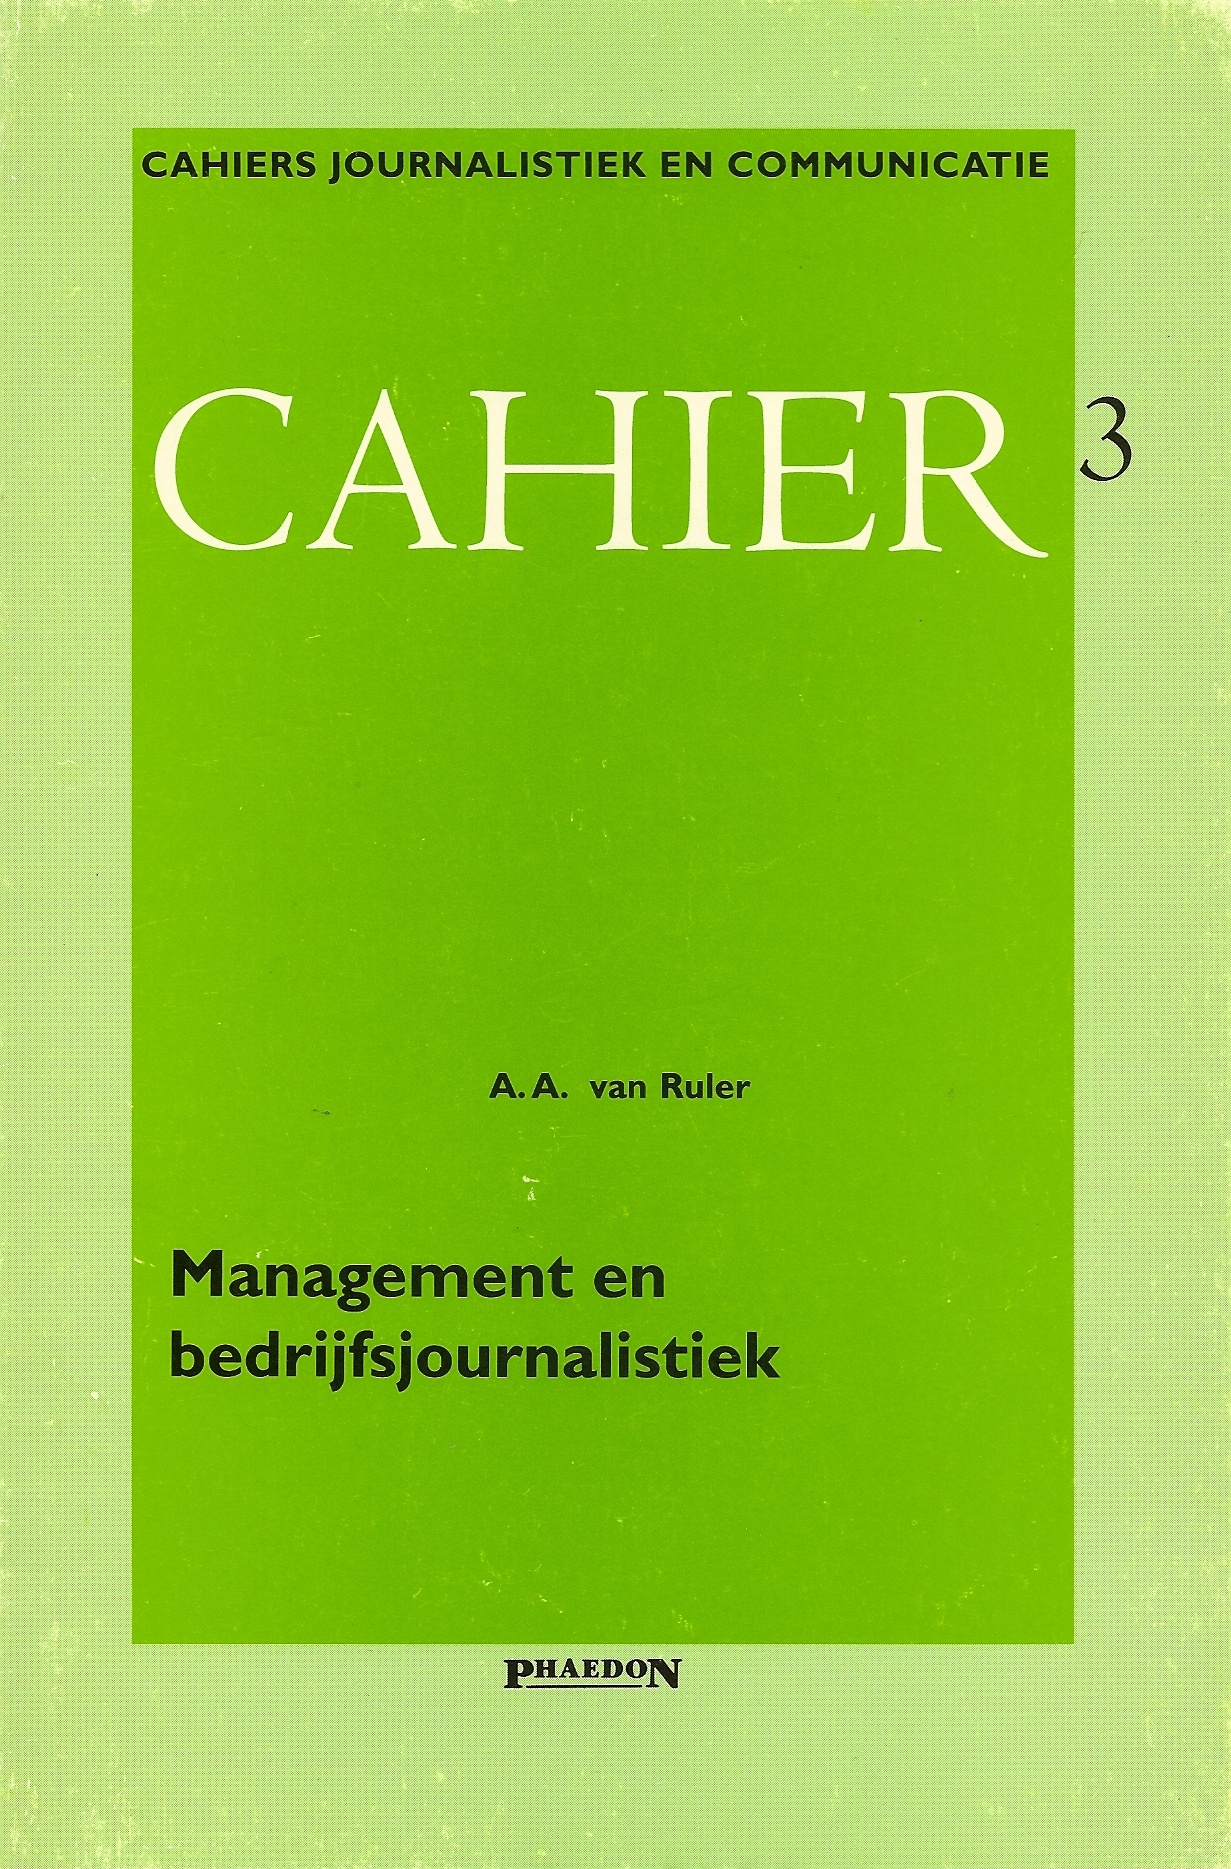 Management en bedrijfsjournalistiek